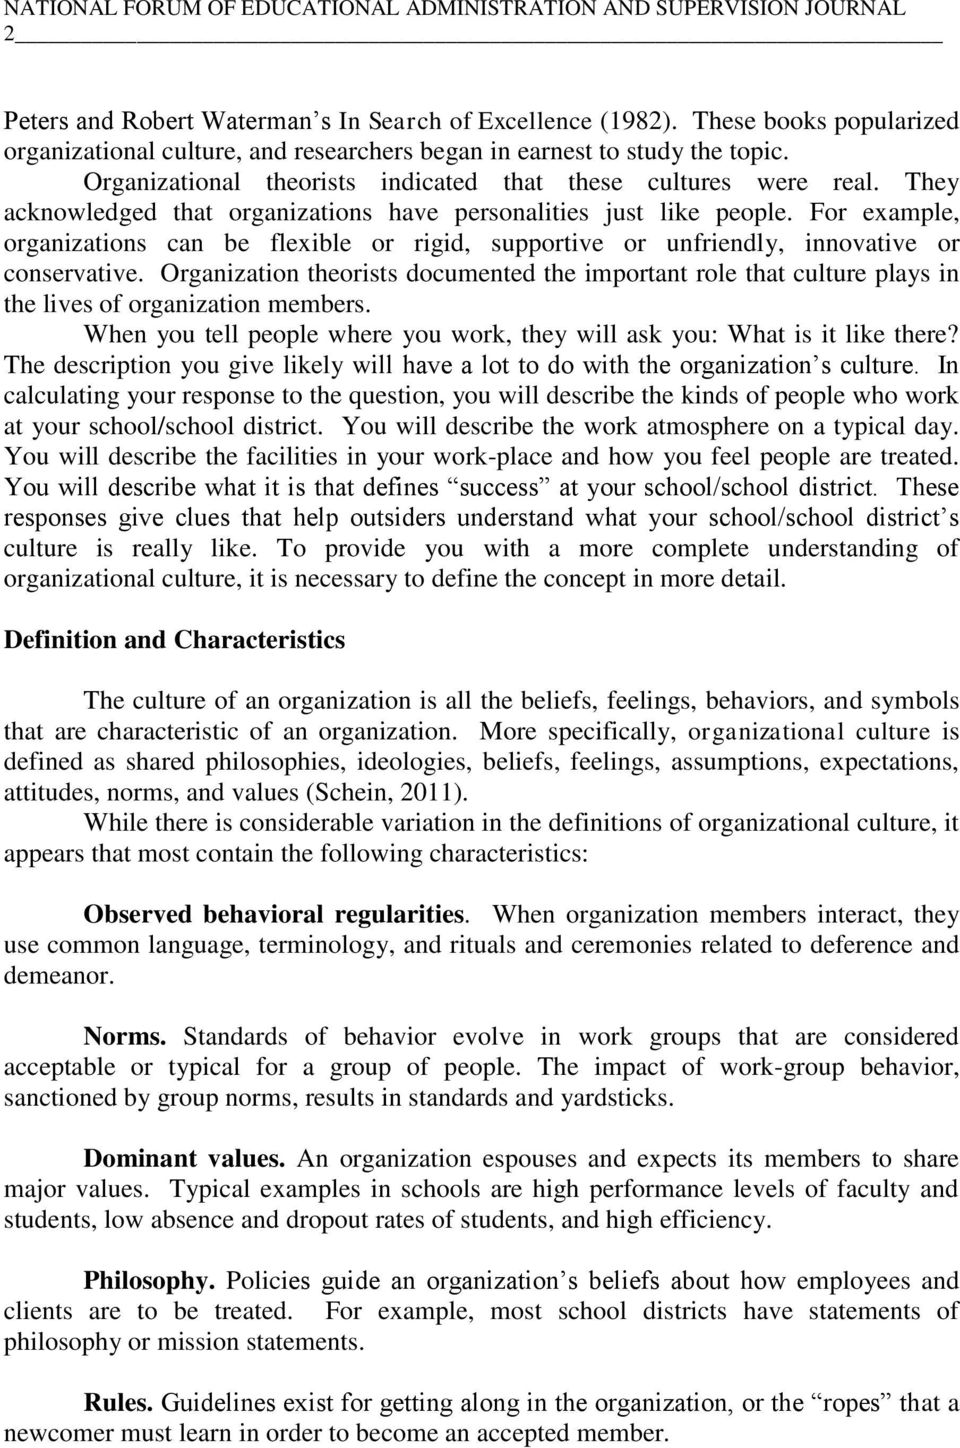 Understanding Organizational Culture A Key Leadership Asset Pdf